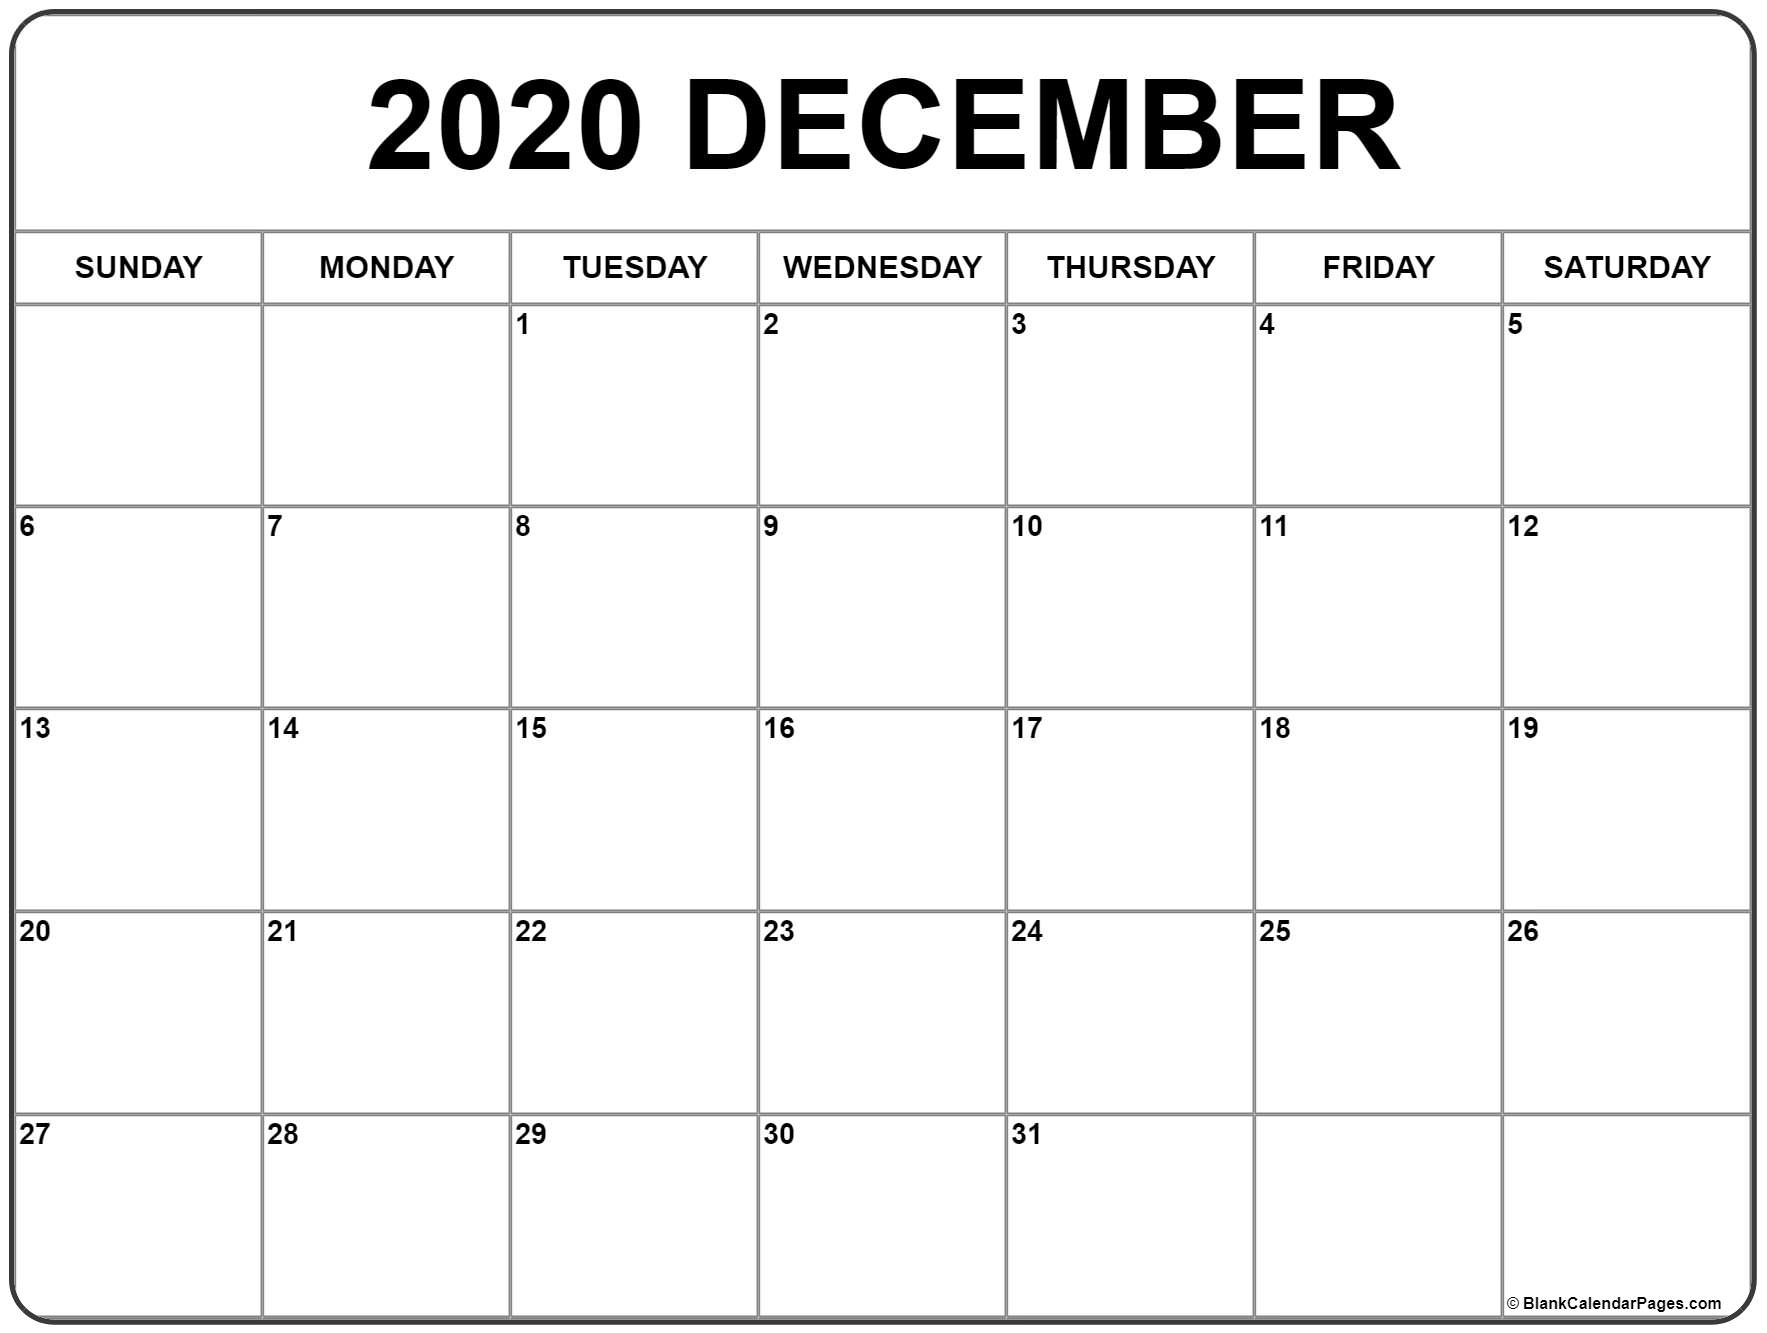 December 2020 Calendar | Free Printable Monthly Calendars inside Blank Bold December Calendar